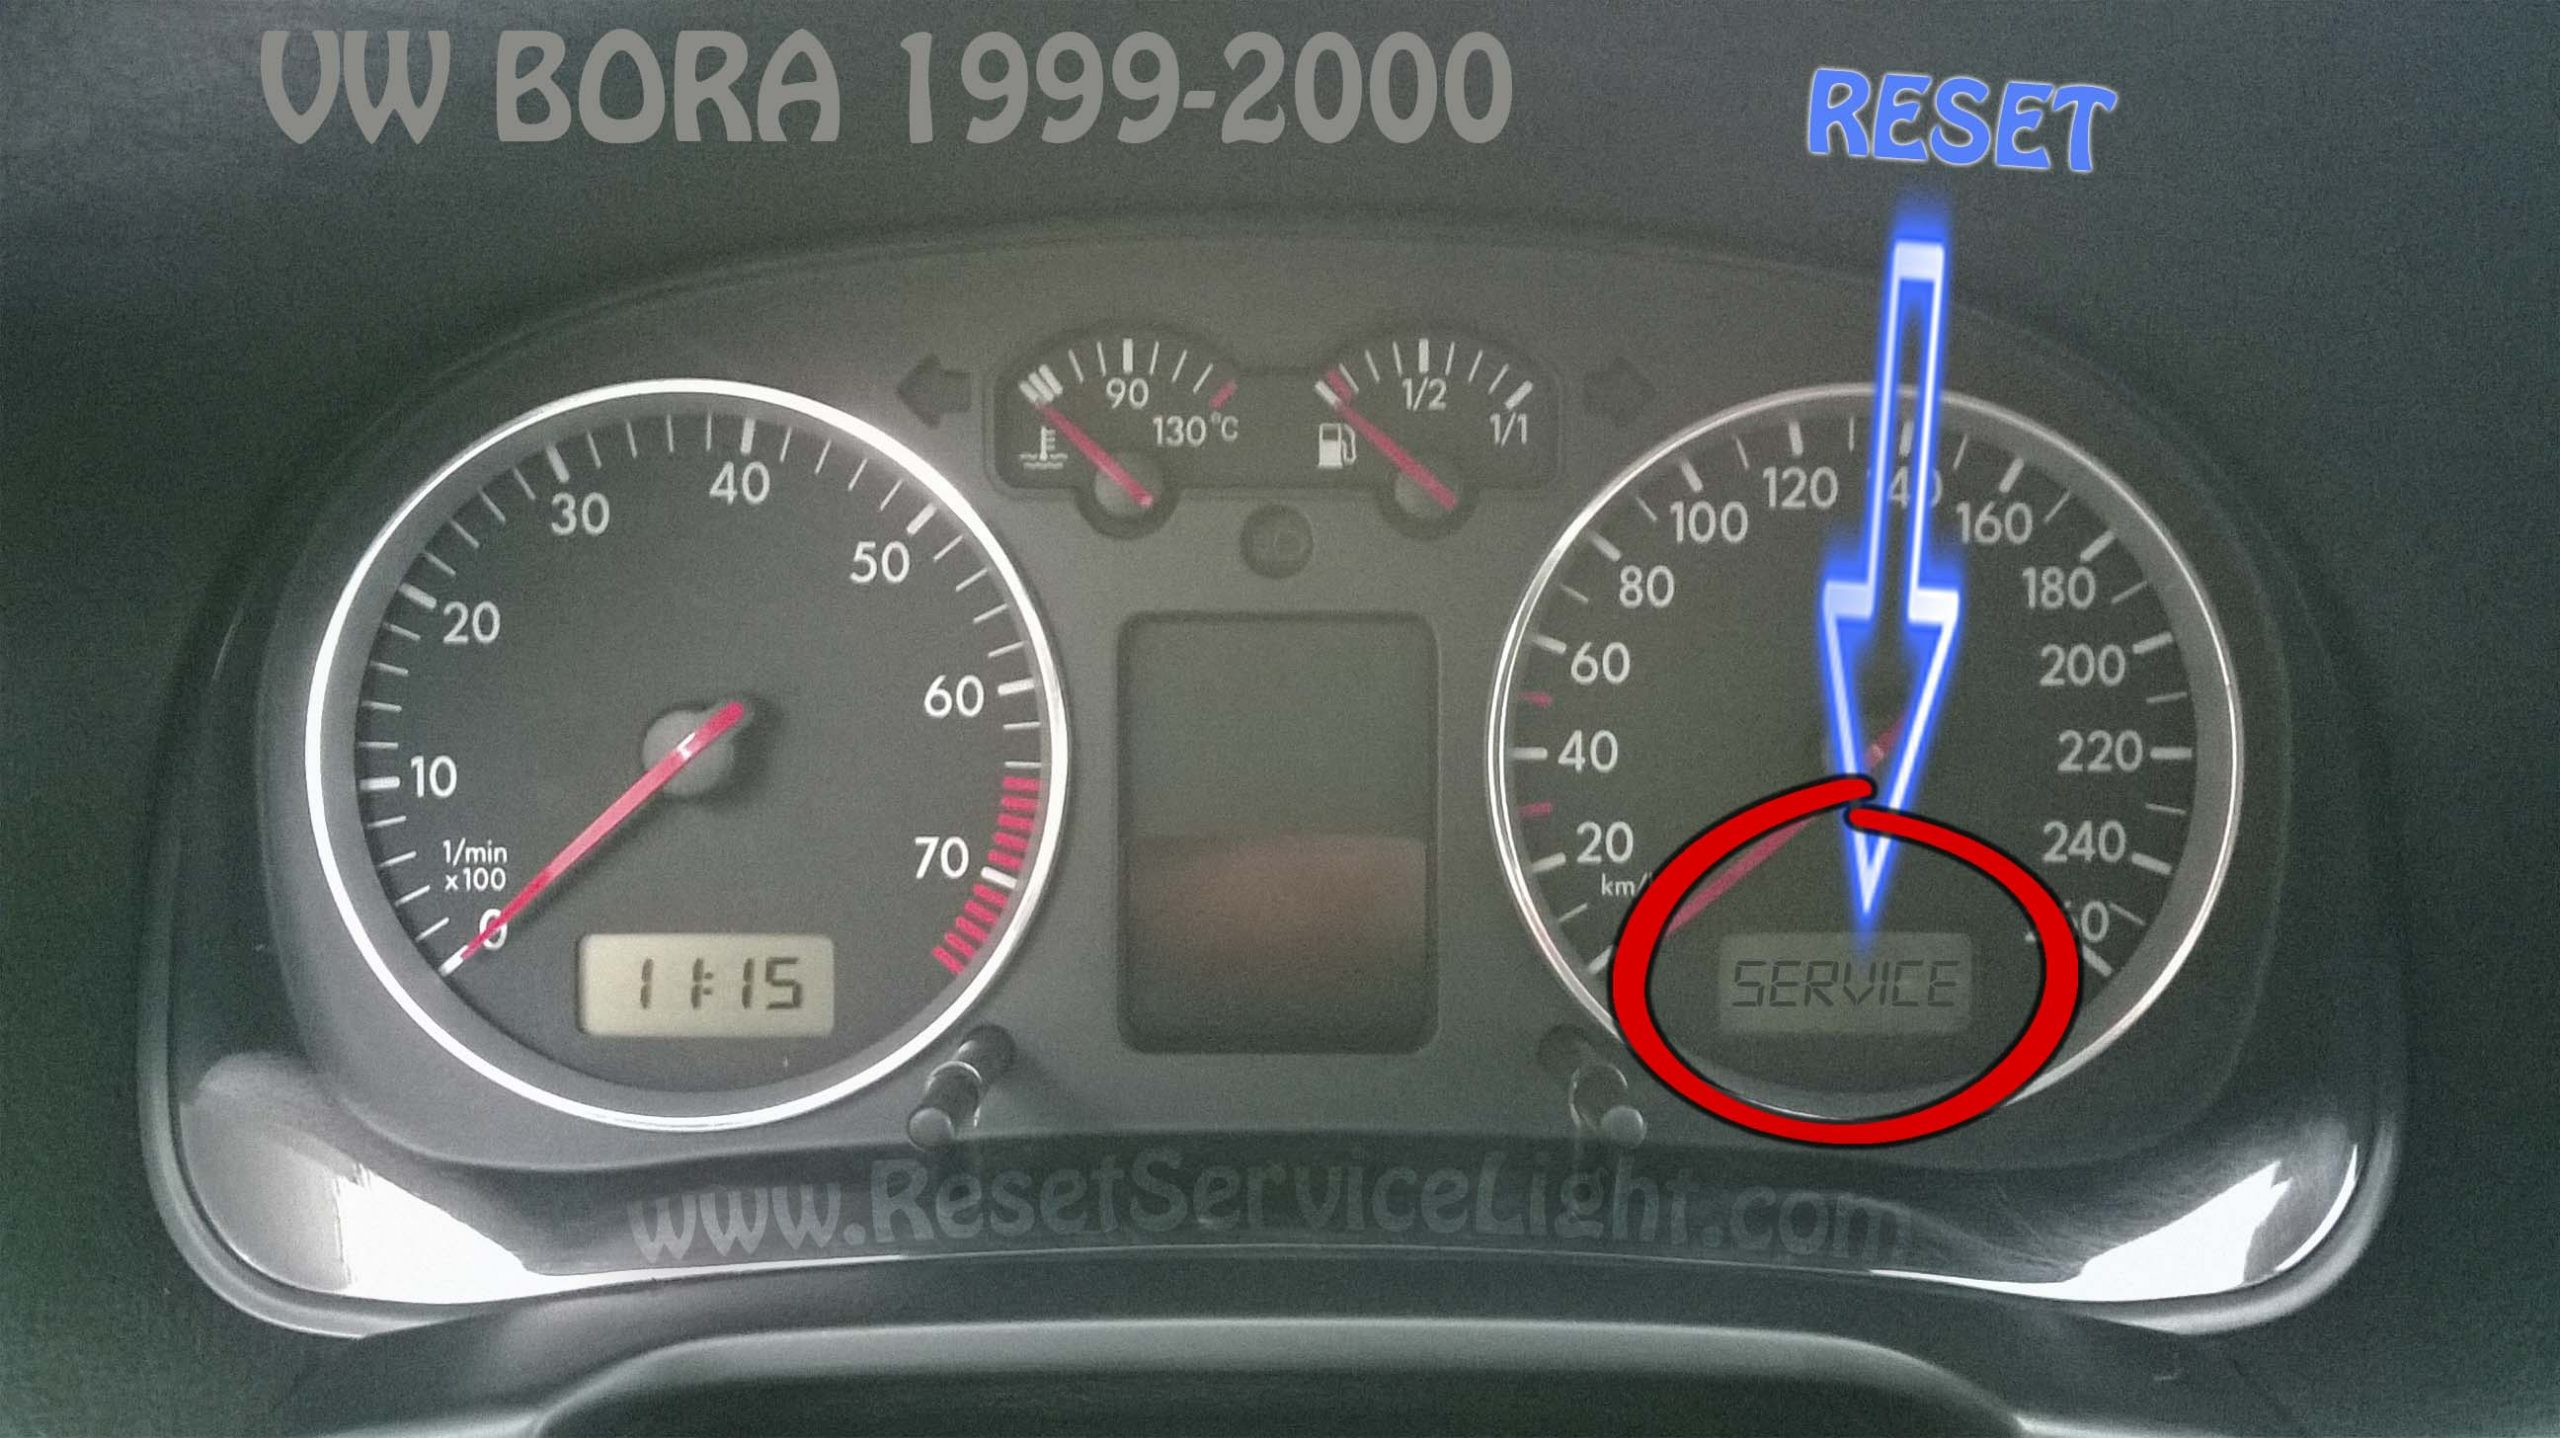 VW Bora 1999-2000 reset service light